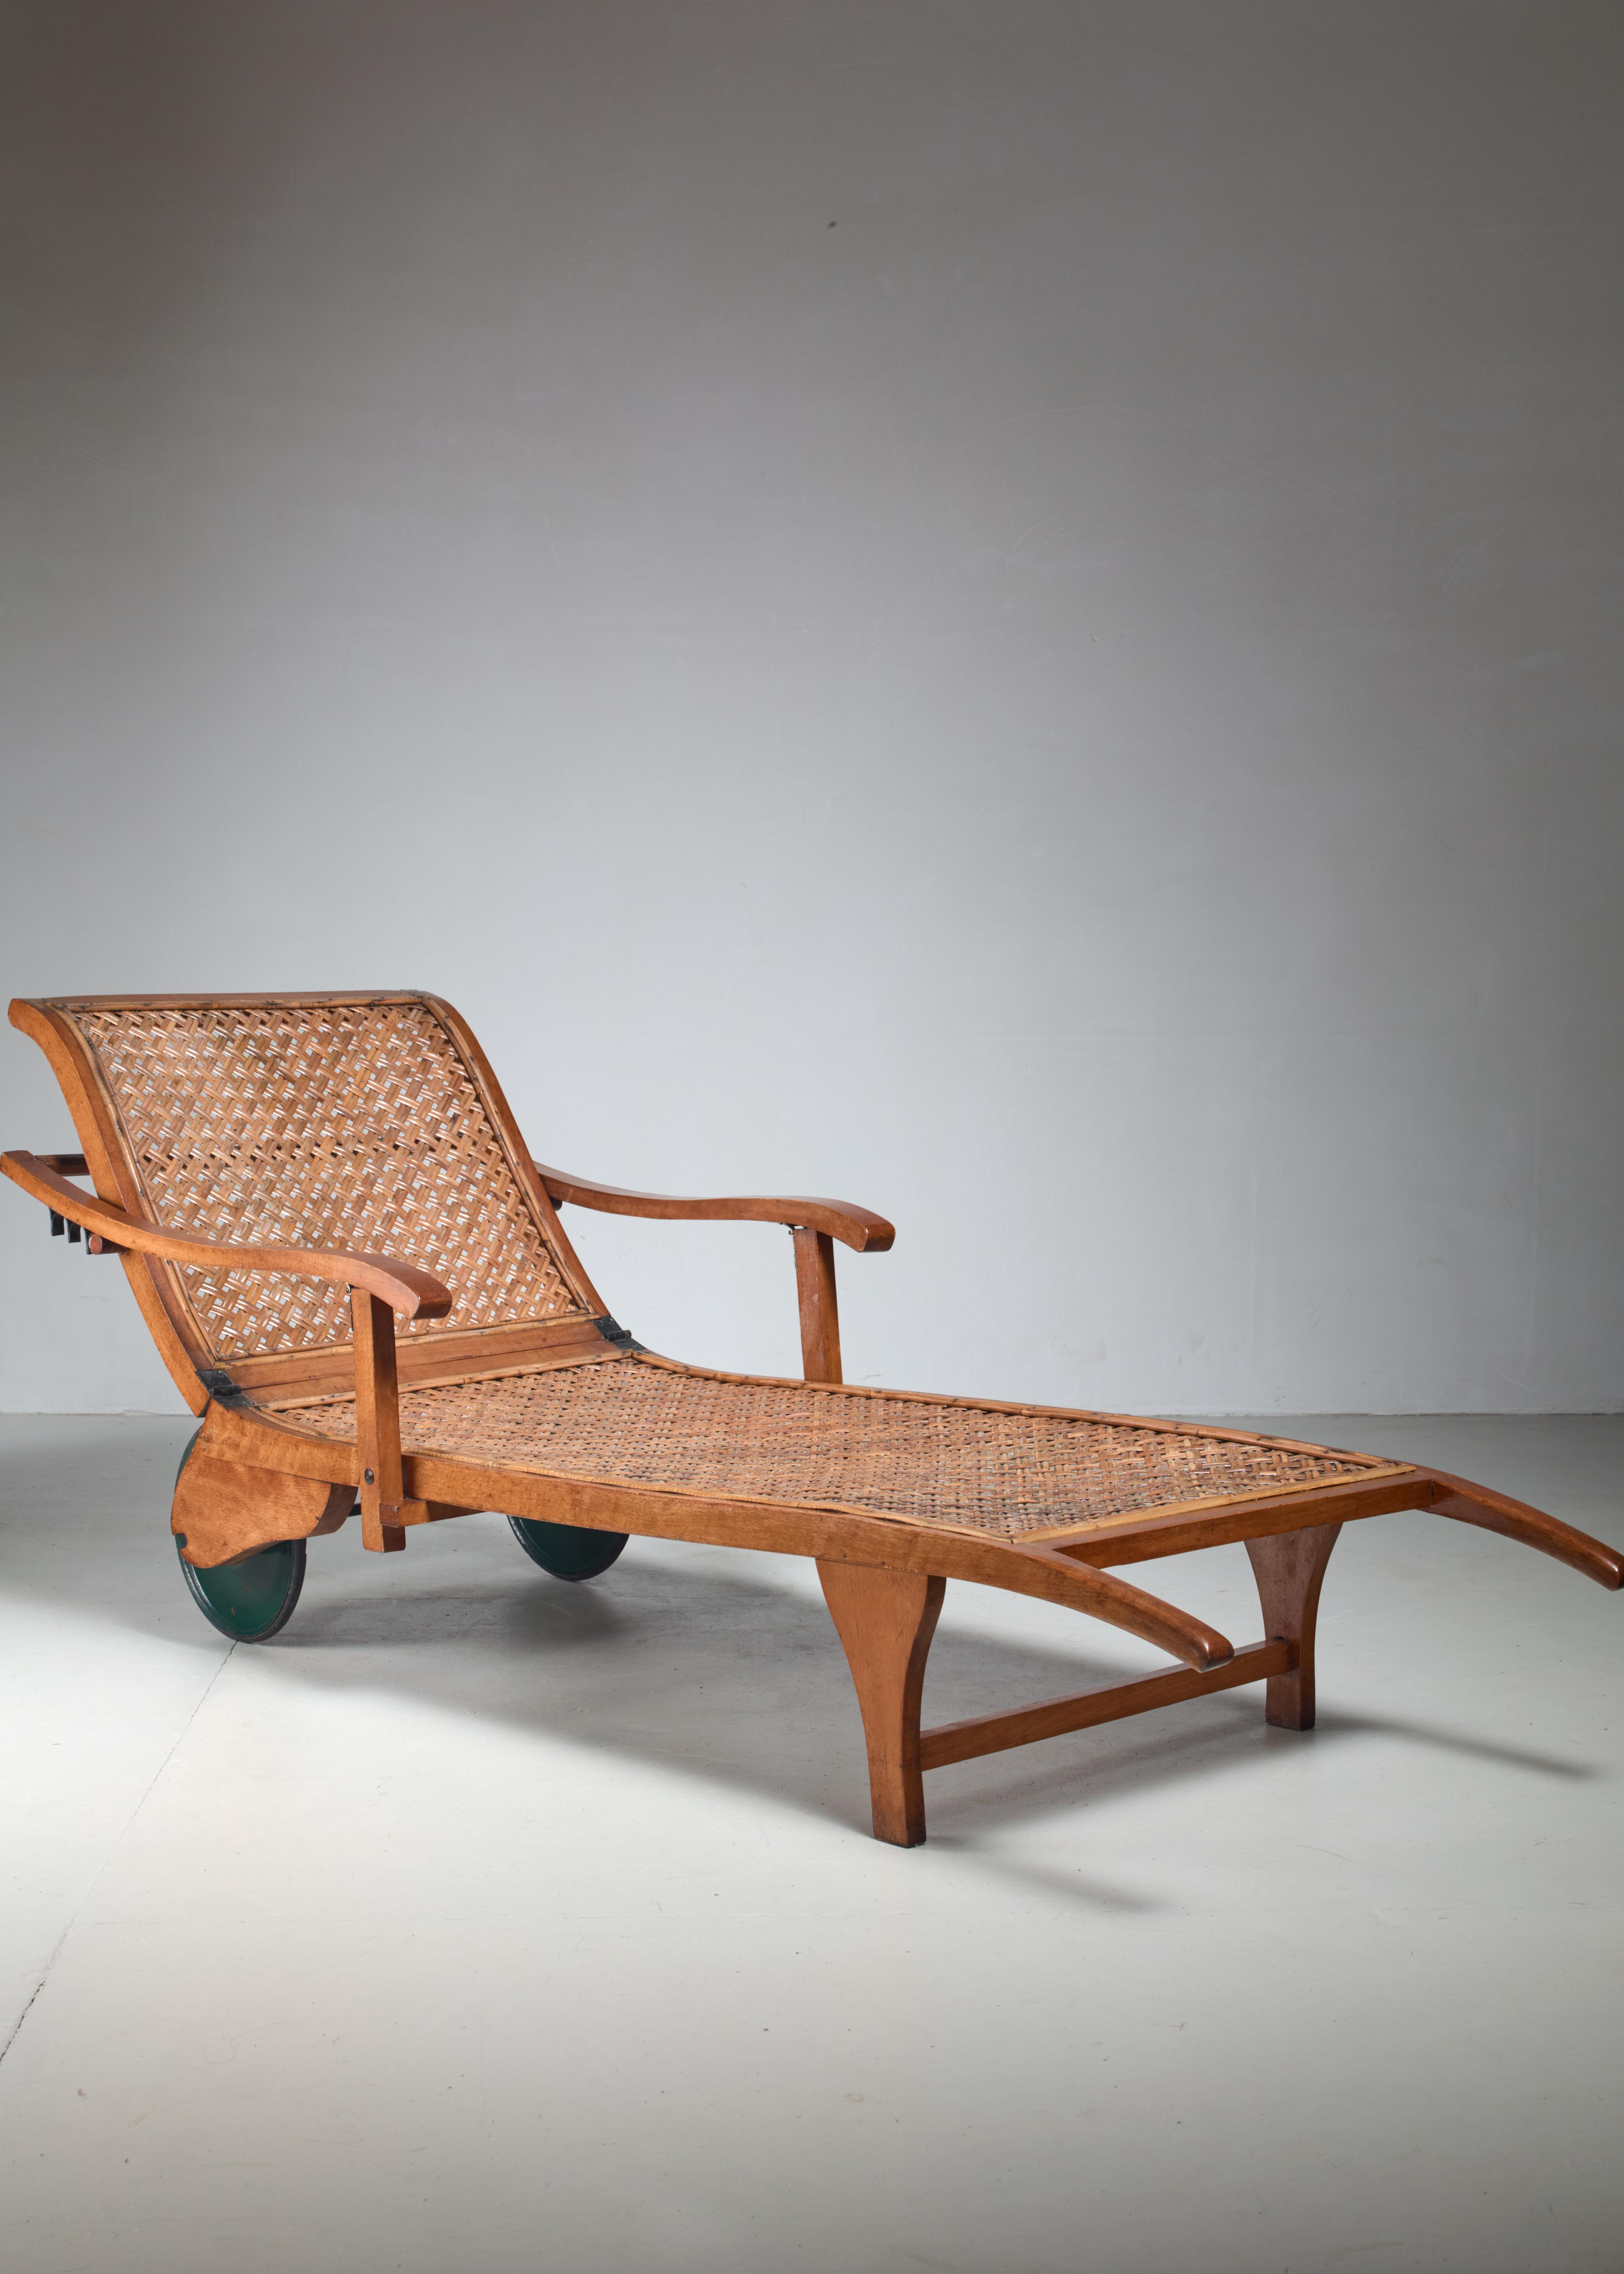 1920s Beech And Woven Cane Garden Chaise On Wheels, Germany, 1920s For Sale